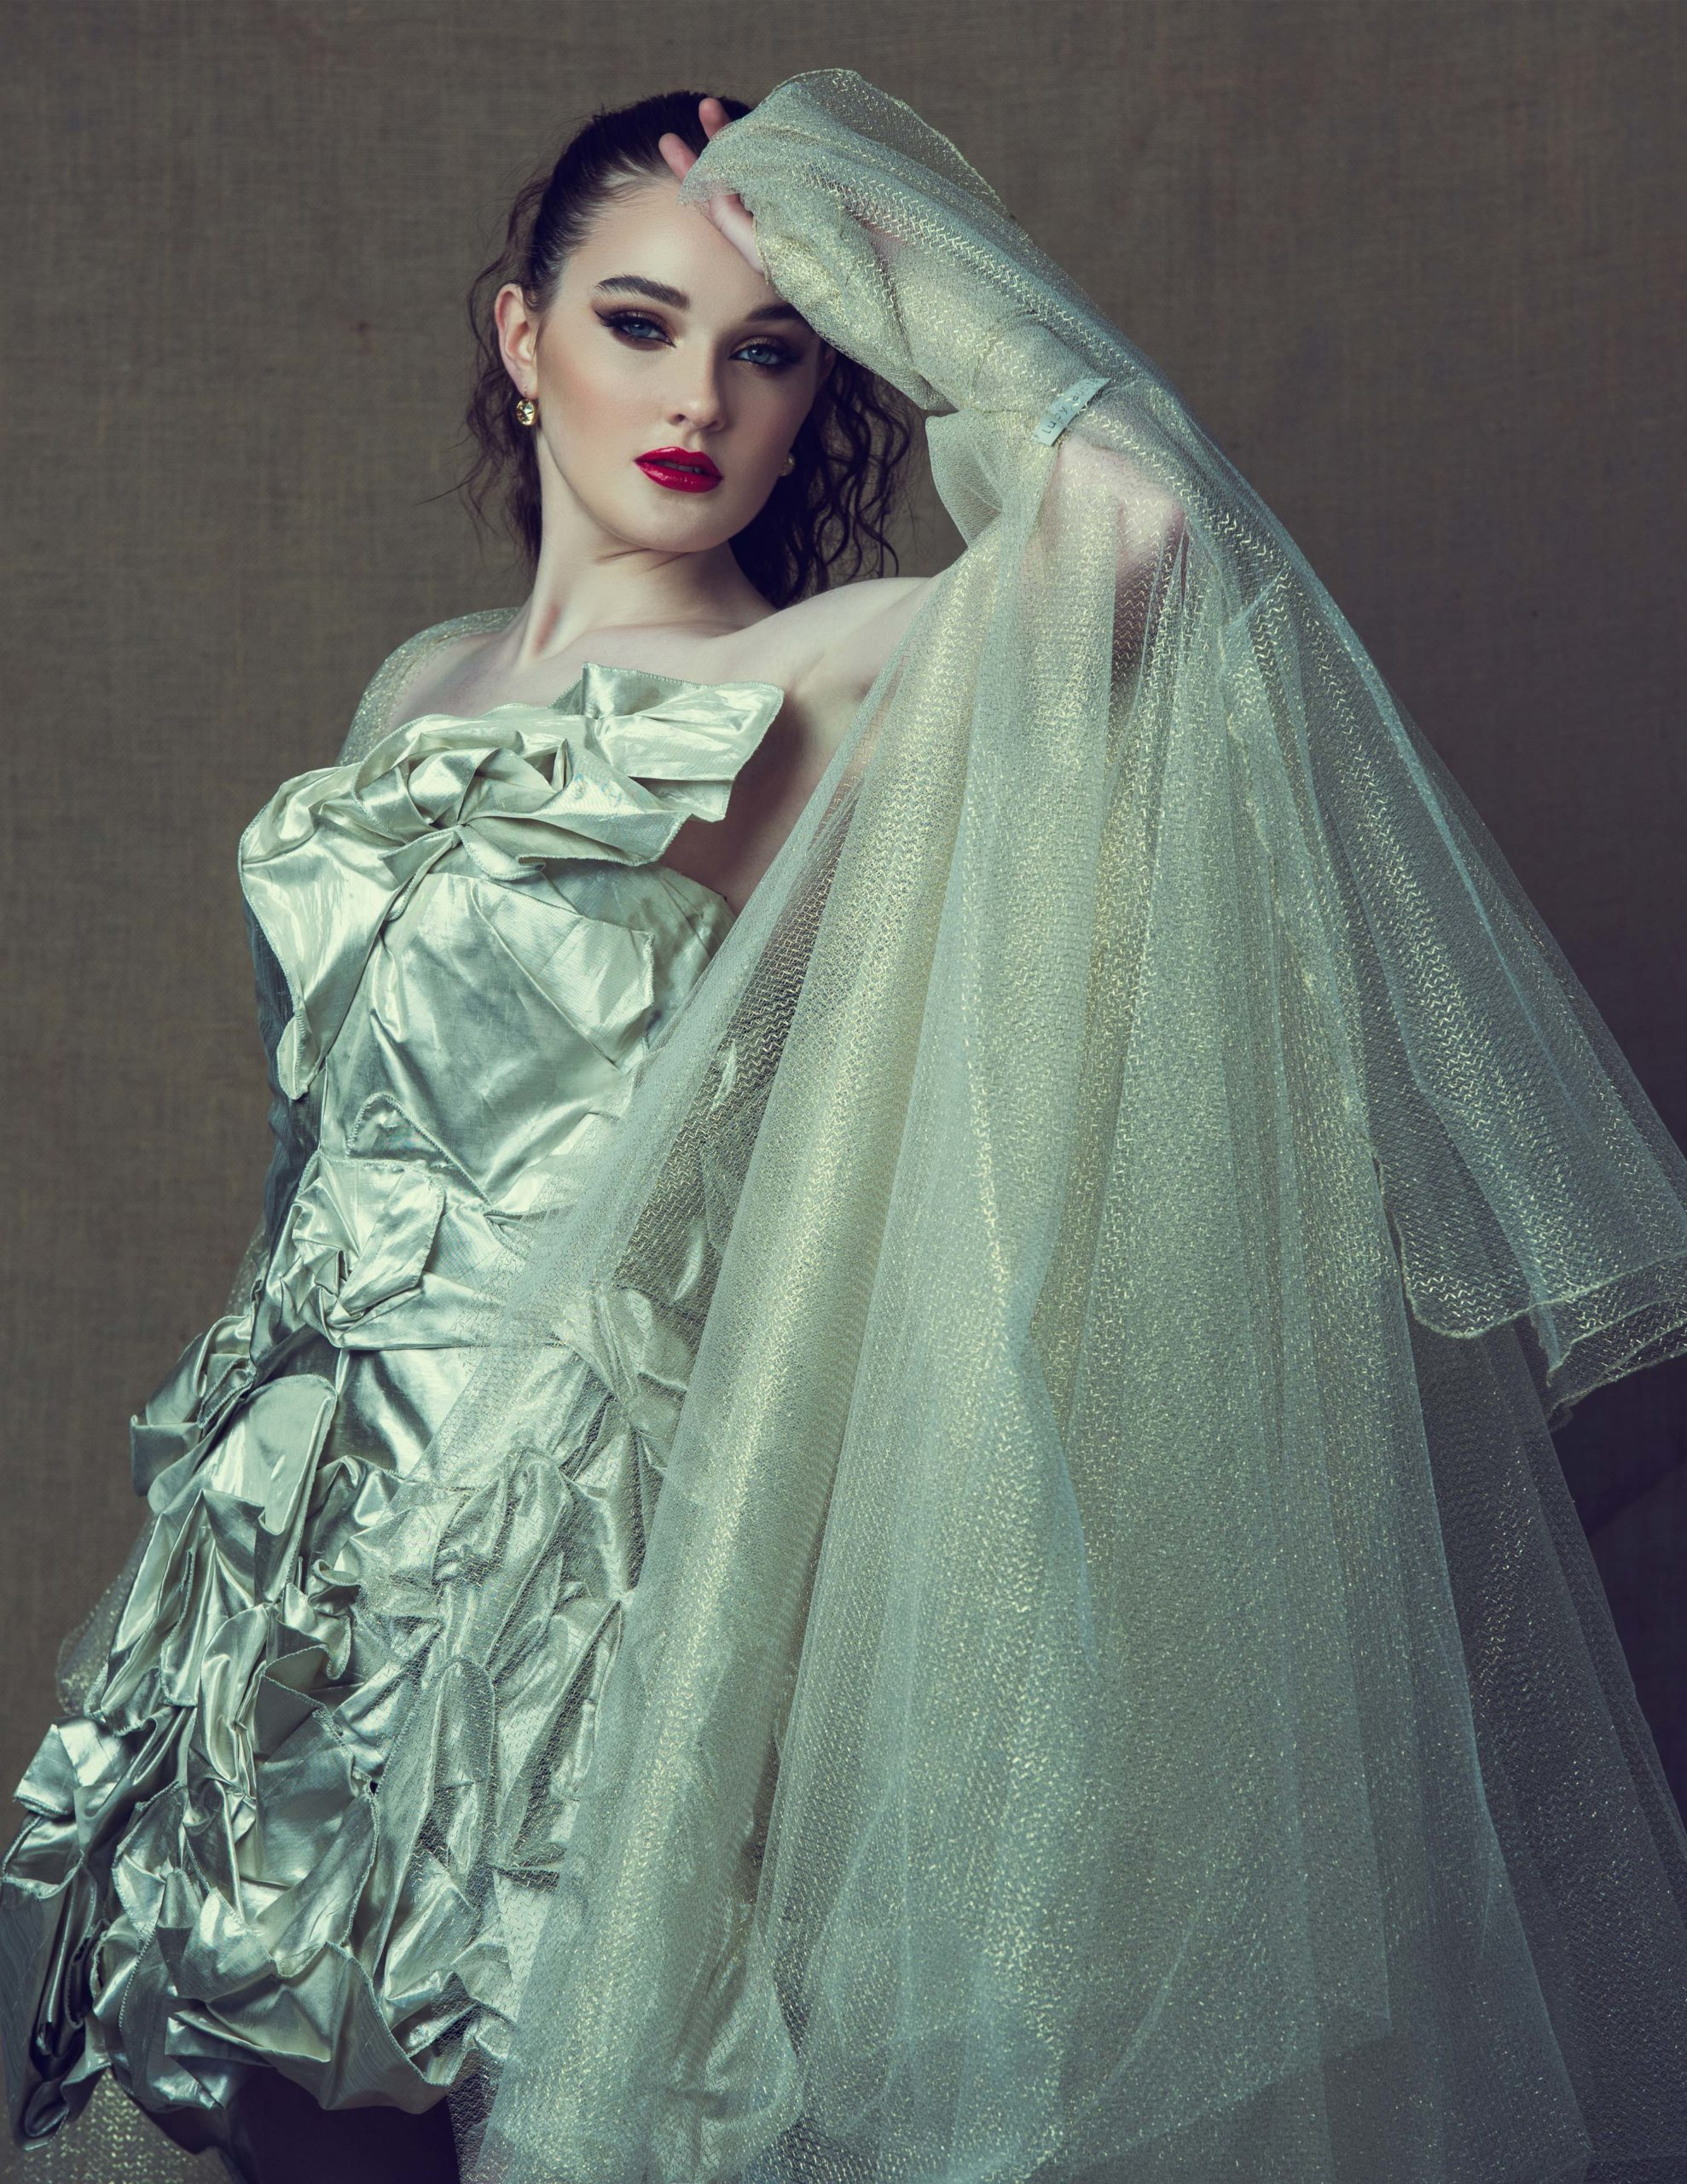 The Sustainability project: floral wonderland dress in silver